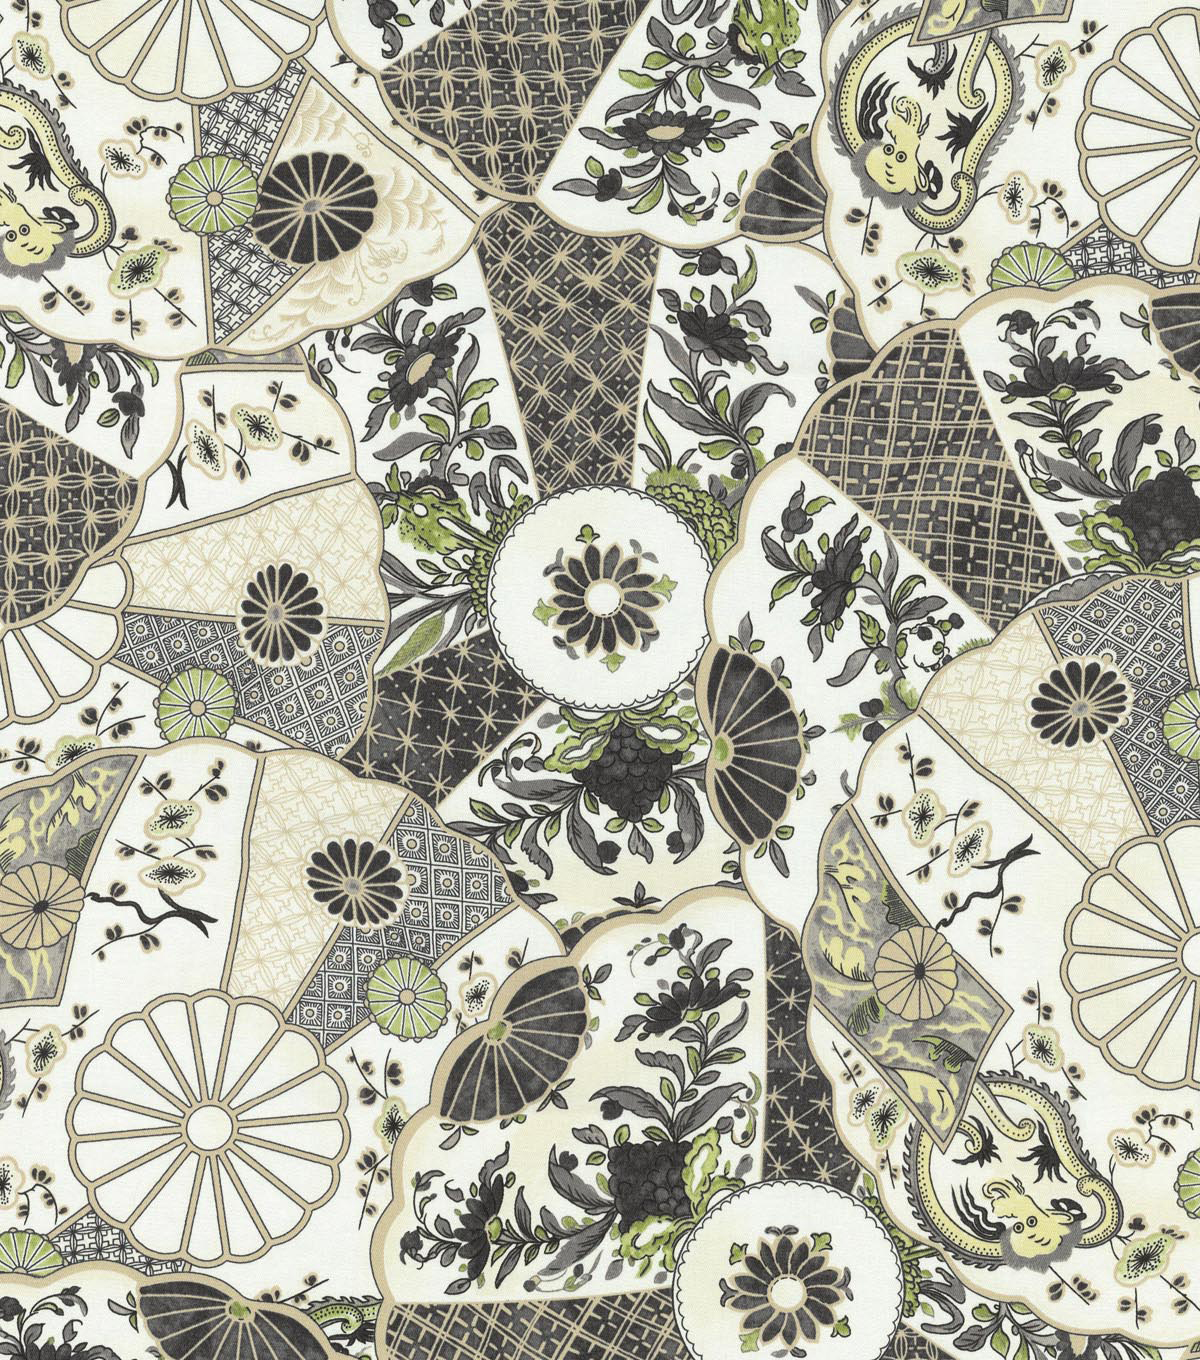 Home Decor 8\u0022x8\u0022 Swatch Fabric-Williamsburg Imari Licorice